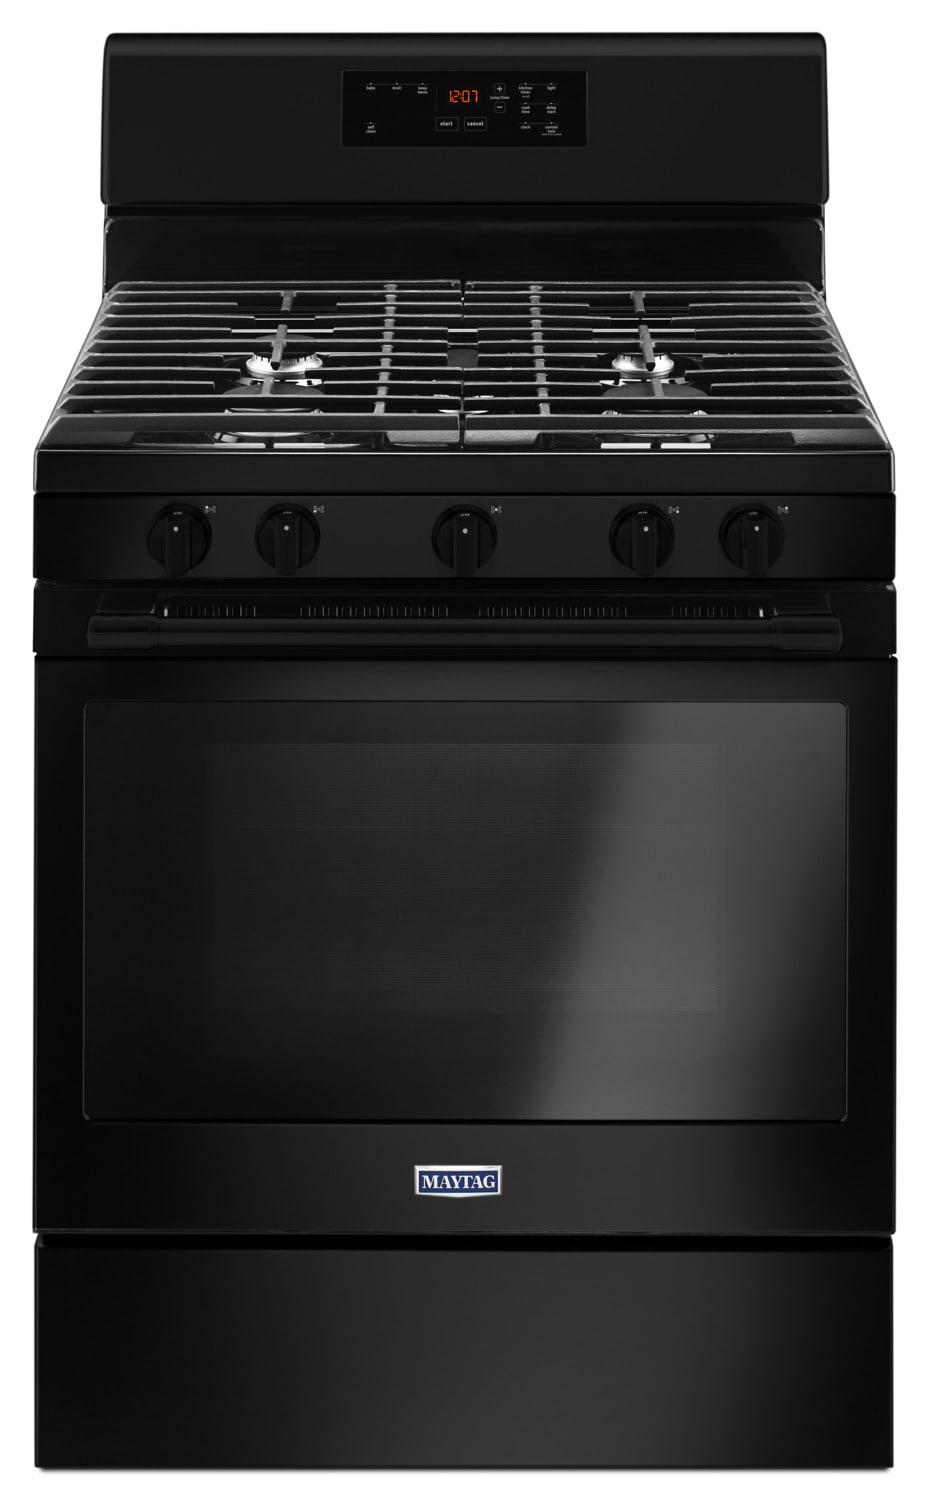 Maytag Black Freestanding Gas Range (5.0 Cu. Ft.) - MGR6600FB